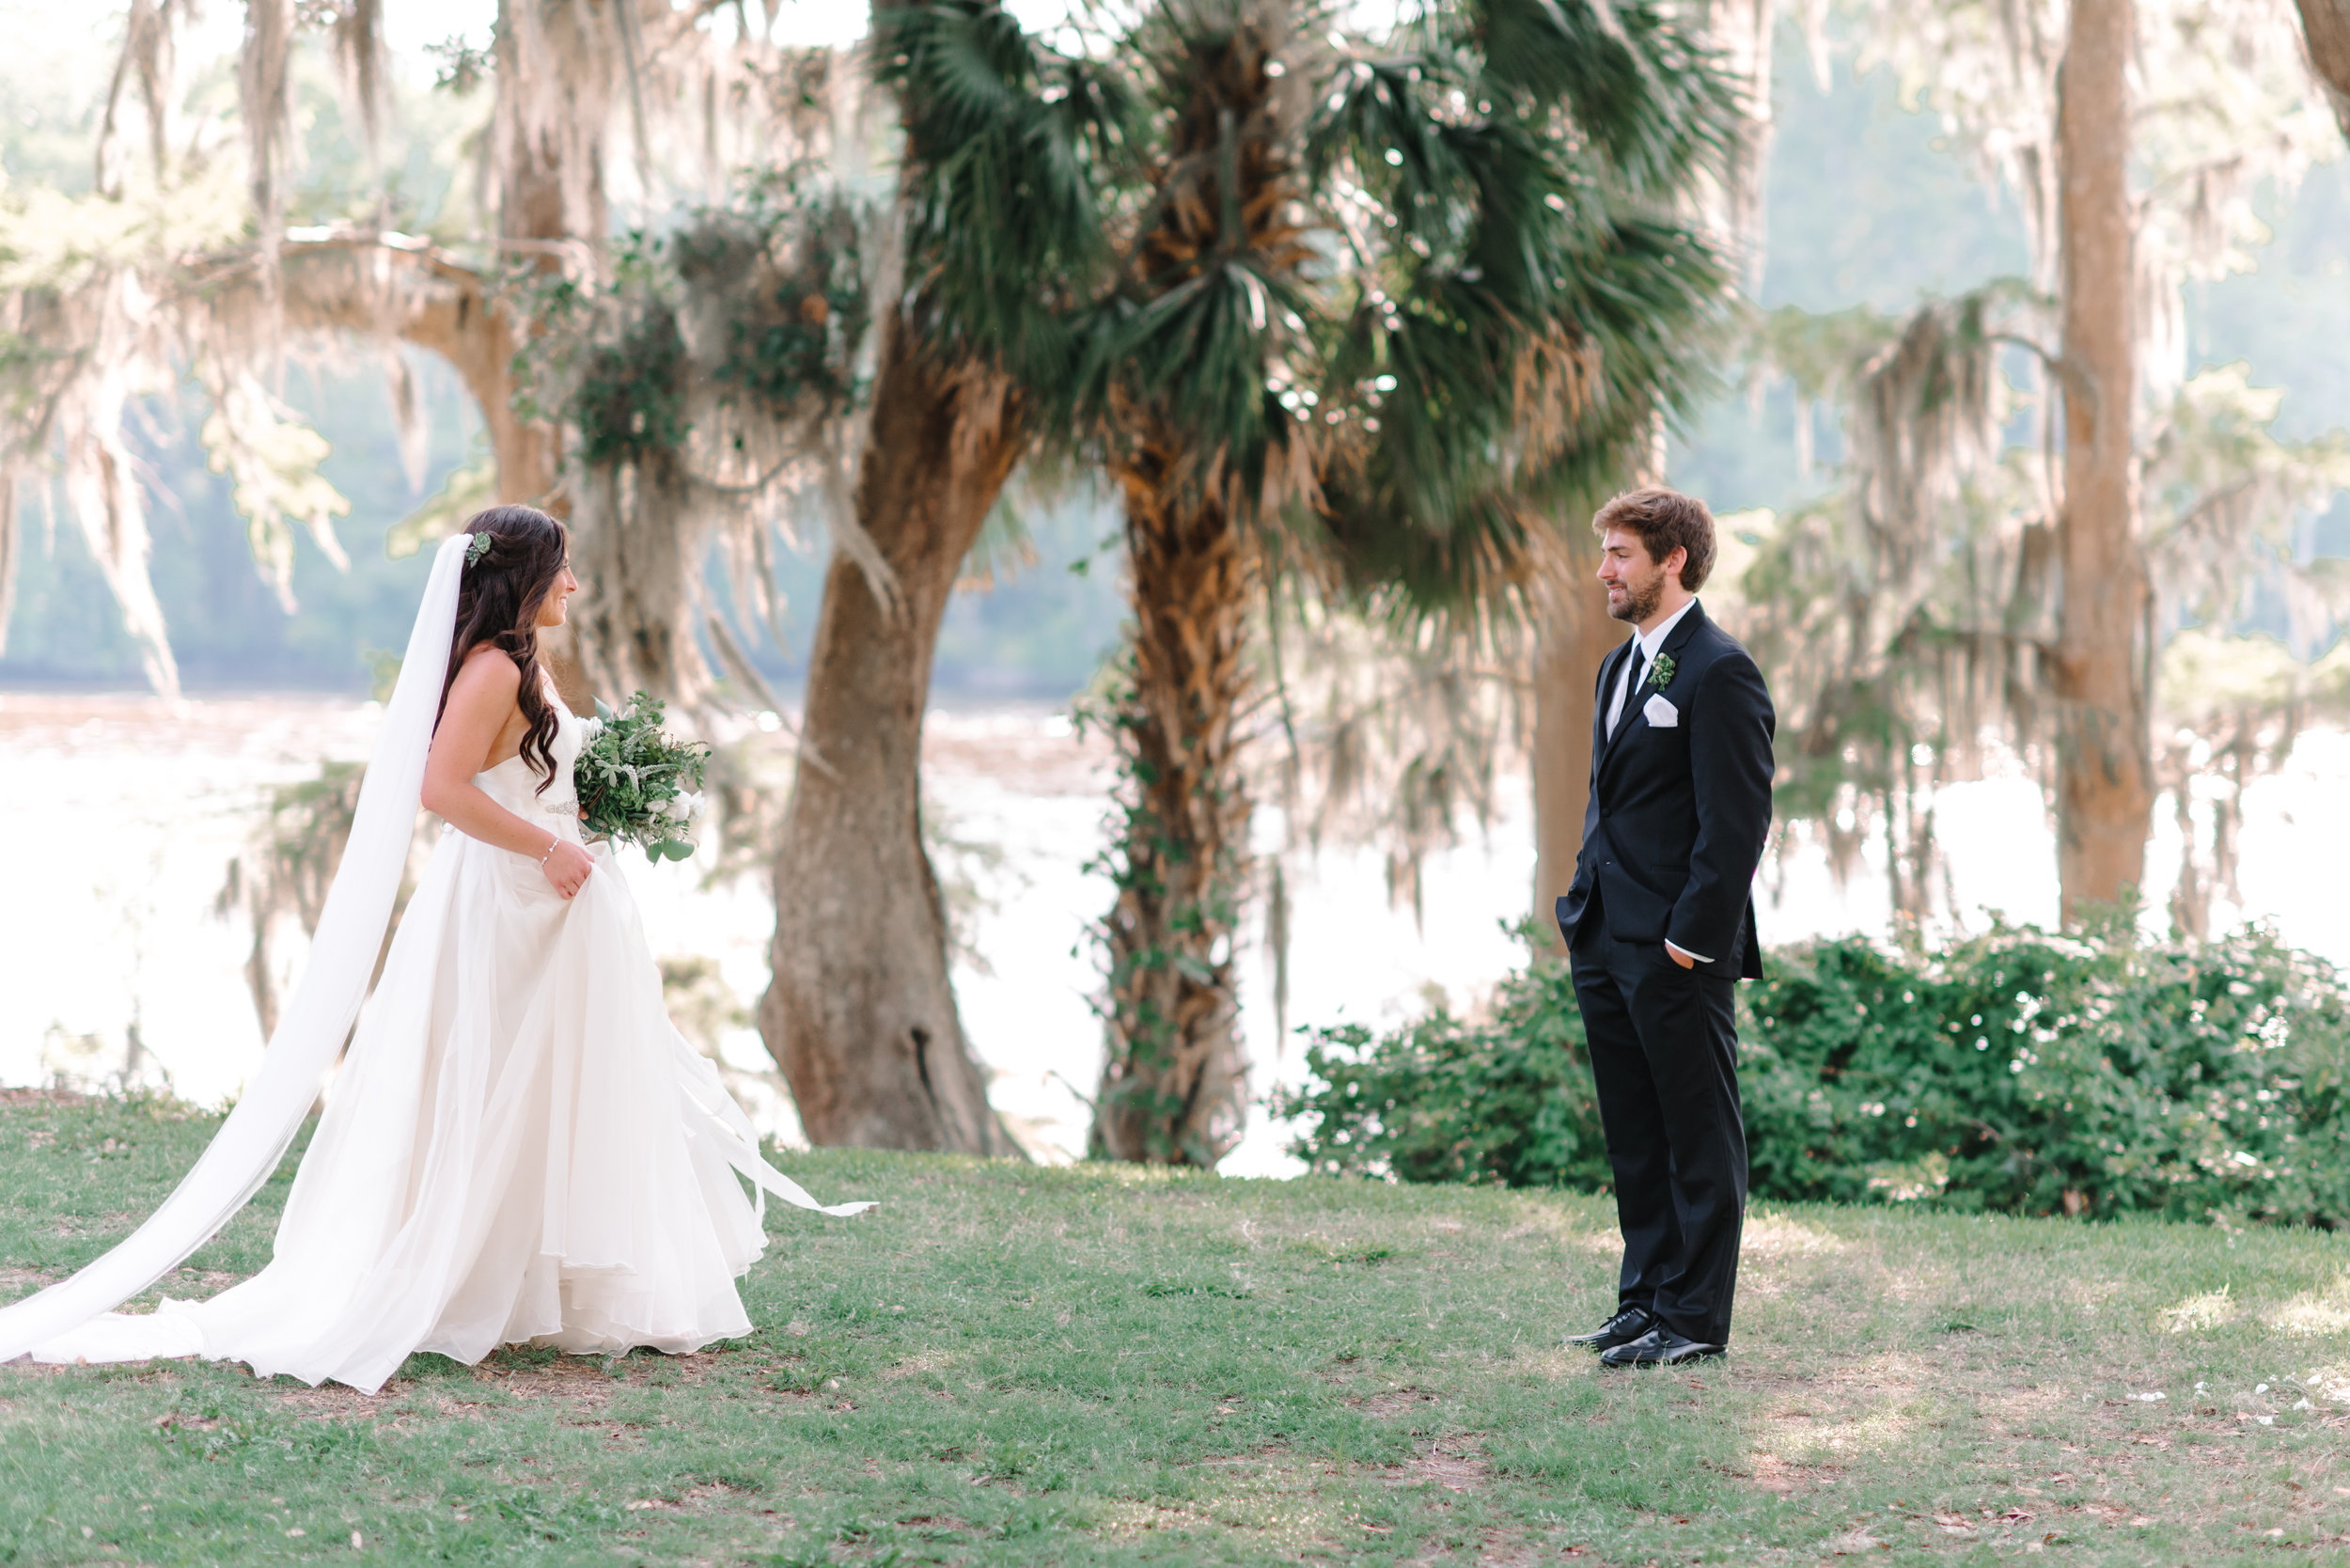 First look at Wachesaw Plantation in Murrells Inlet SC  //  Myrtle Beach wedding photos by Pasha Belman Photography